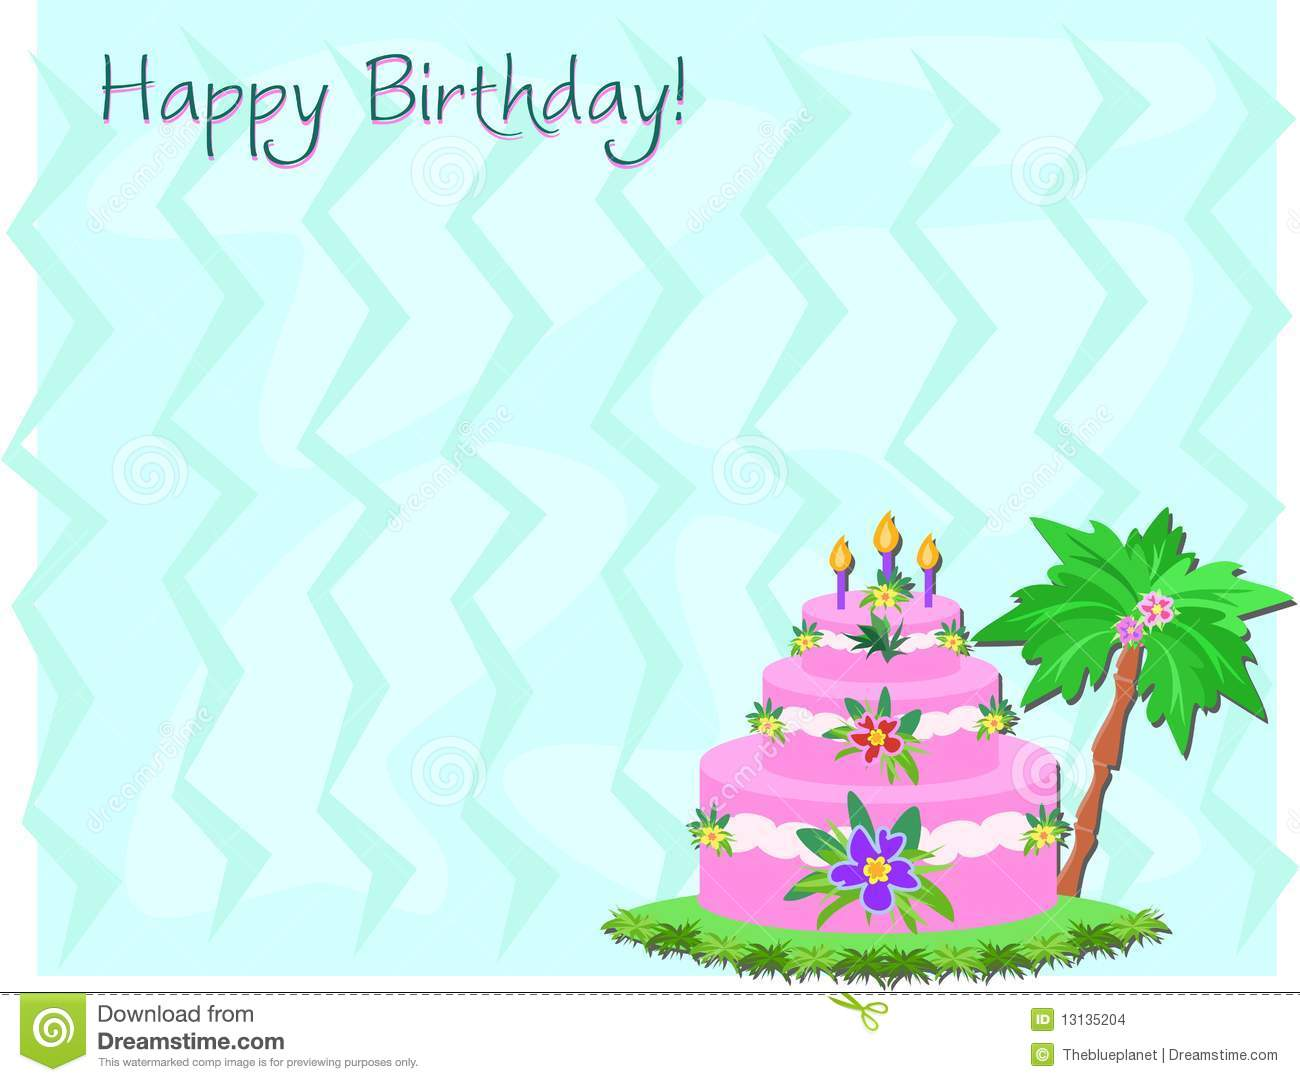 Happy Birthday Cake And Greeting Stock Images - Image: 13135204